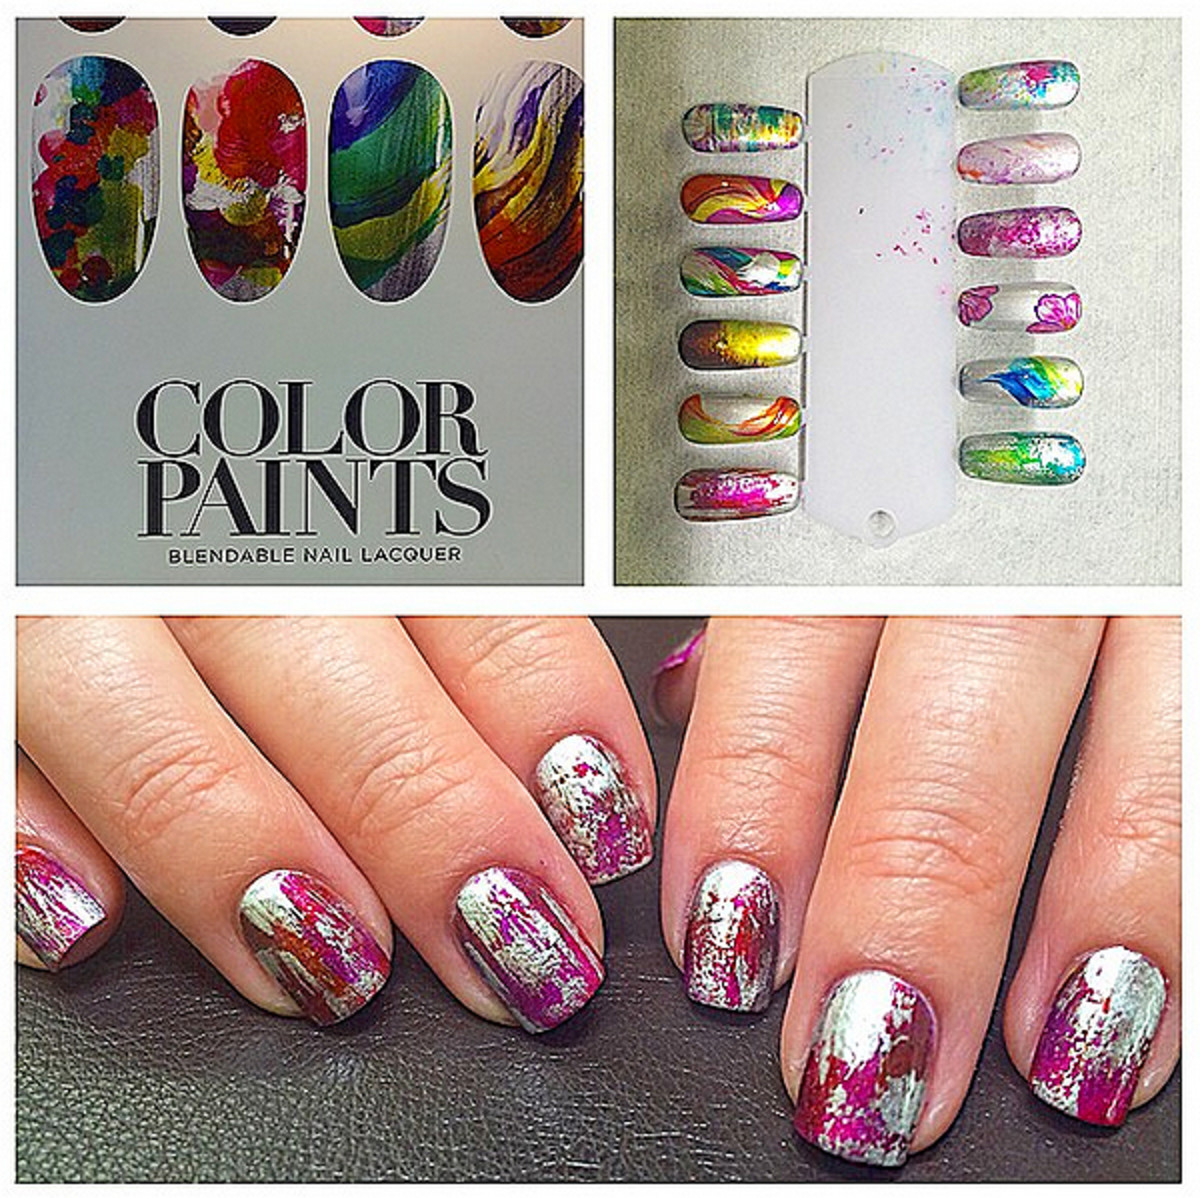 OPI Color Paints_image via OPI global artist Danny Phung on Instagram